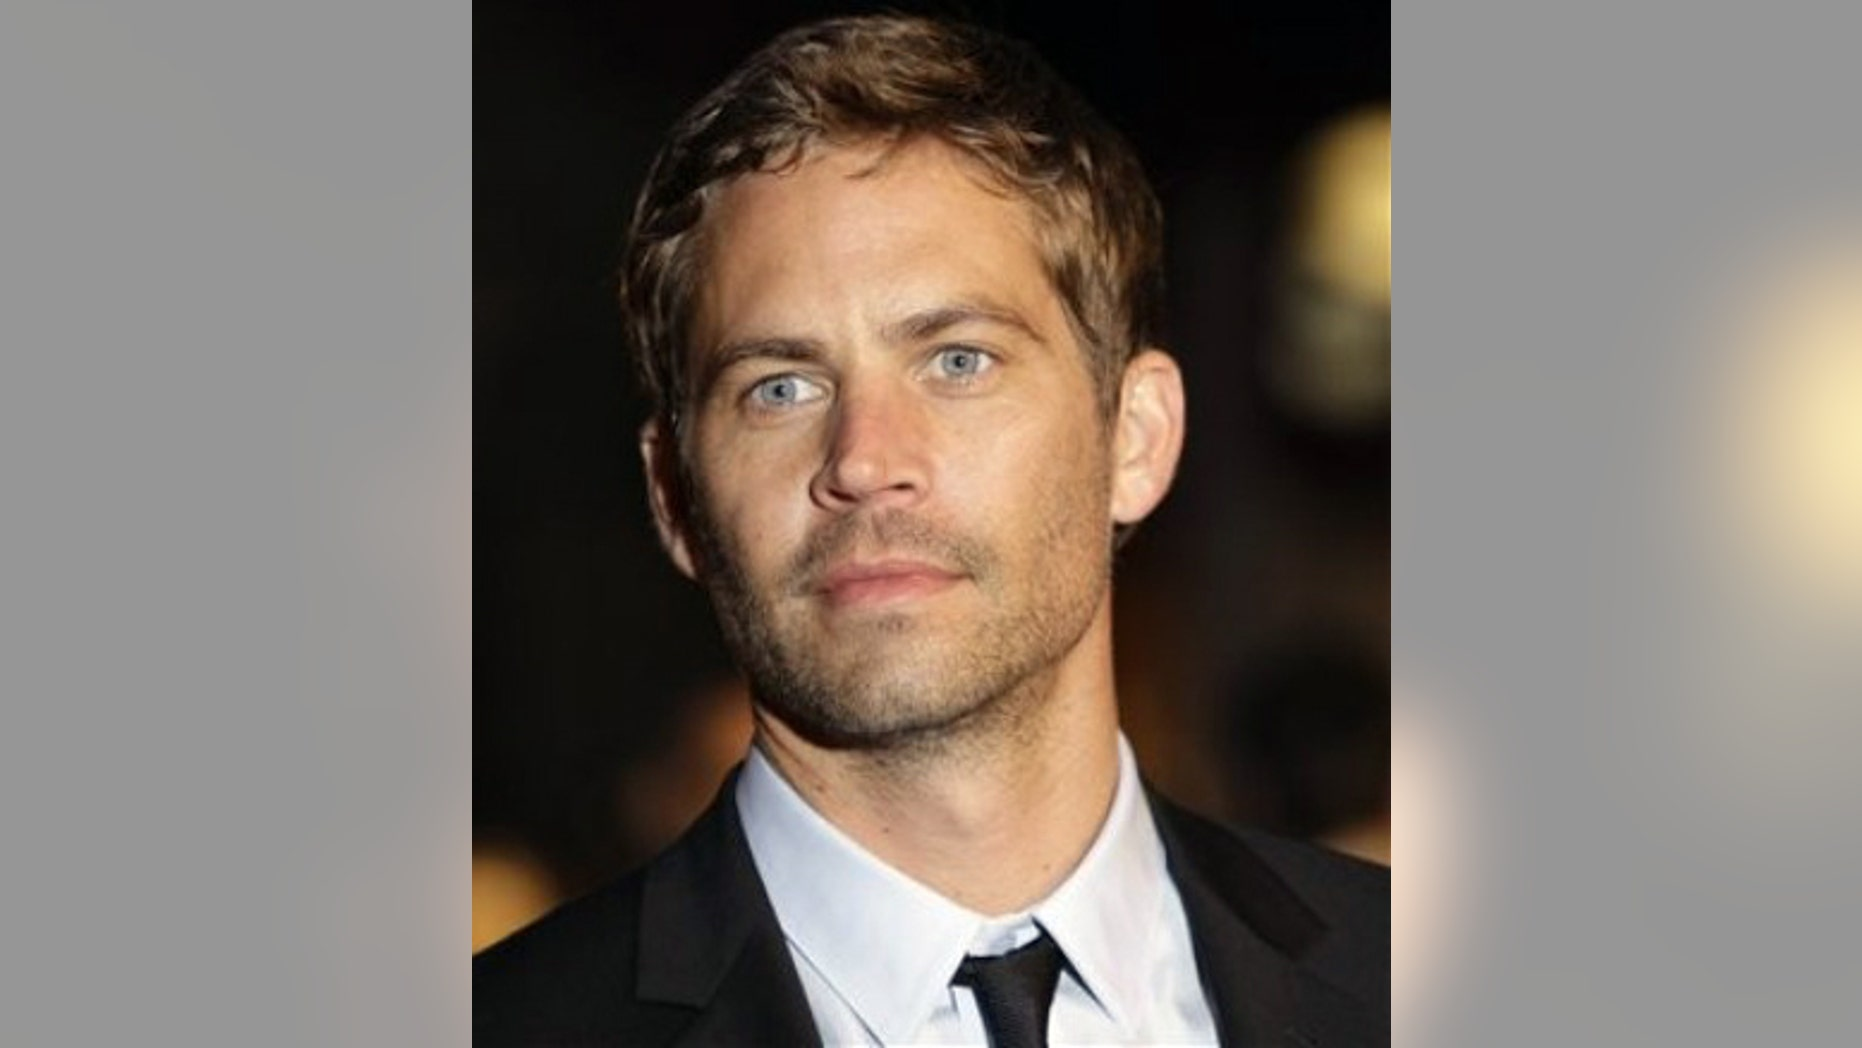 U.S actor Paul Walker arrives for the UK Premiere of Fast & Furious, in London's Leicester Square, Thursday, March 19, 2009. (AP Photo/Joel Ryan)